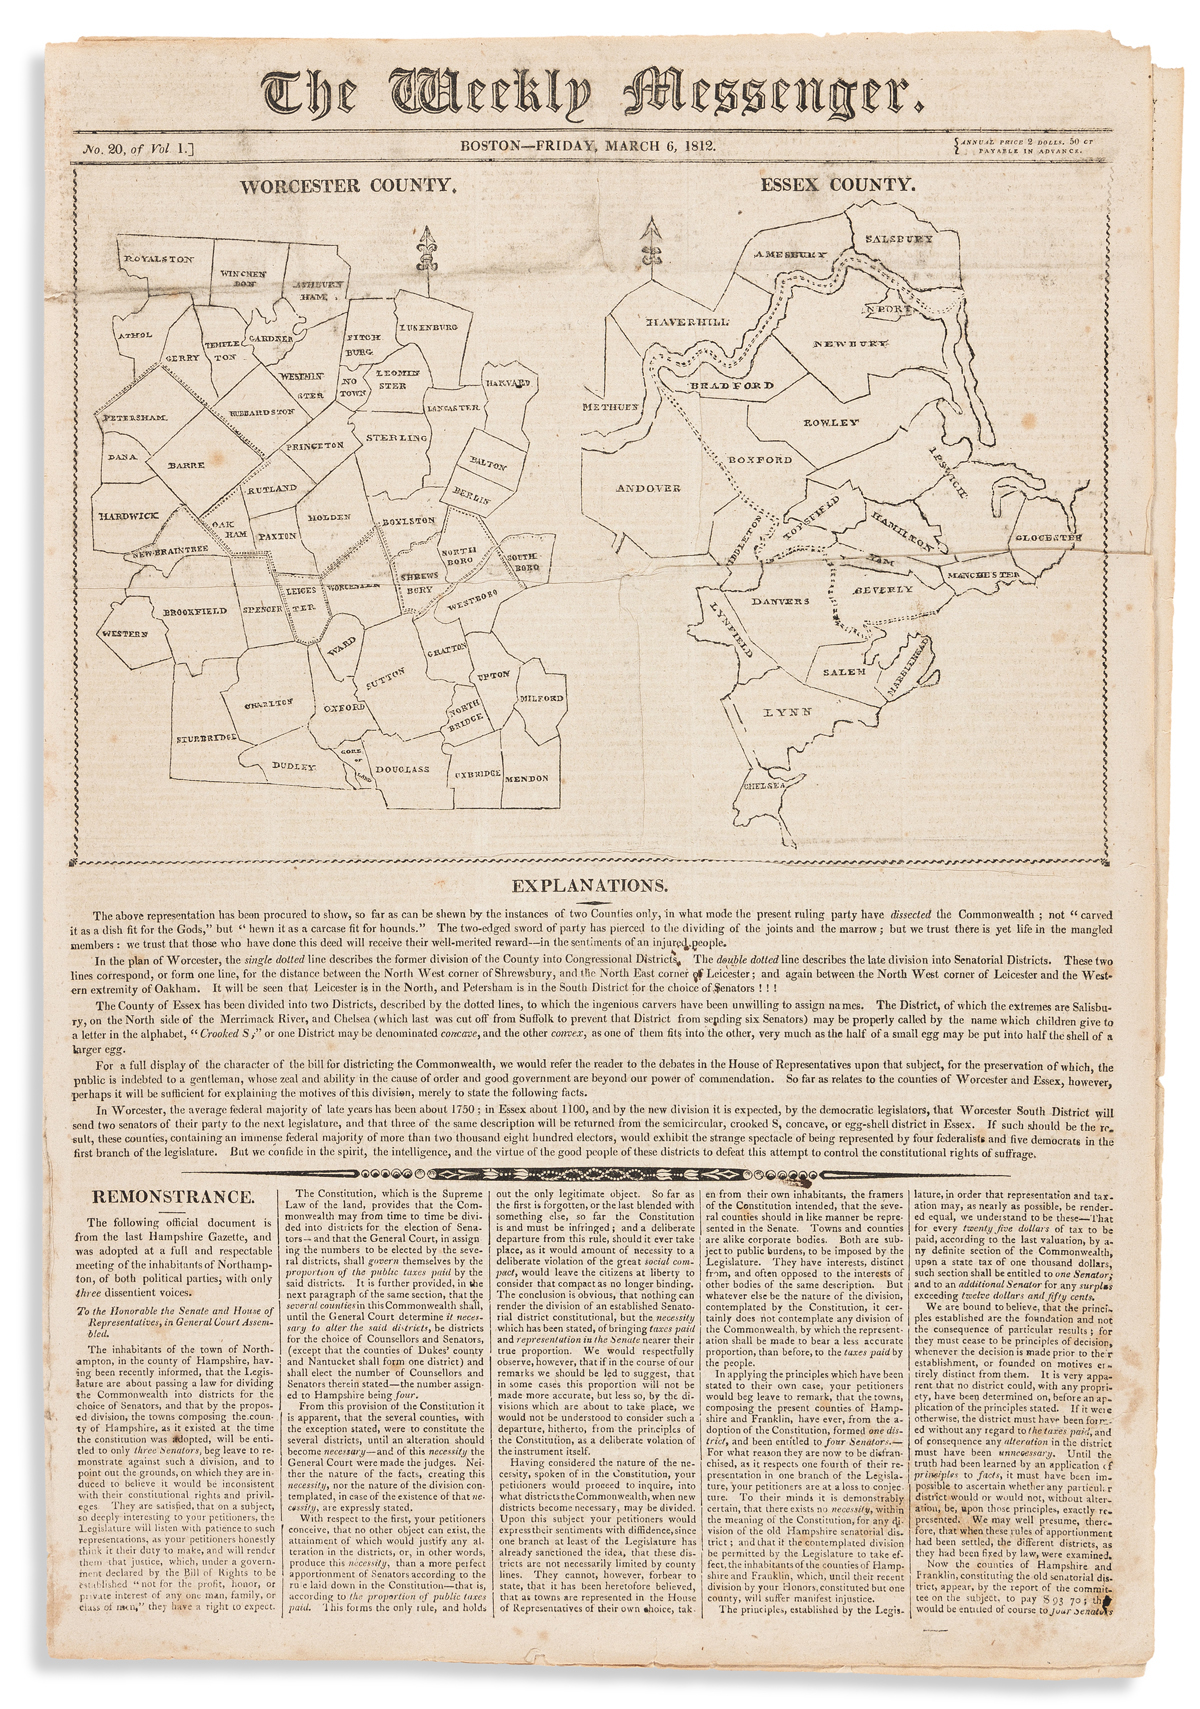 (POLITICS.) Issue of the Boston Weekly Messenger featuring the map which inspired the Gerrymander.